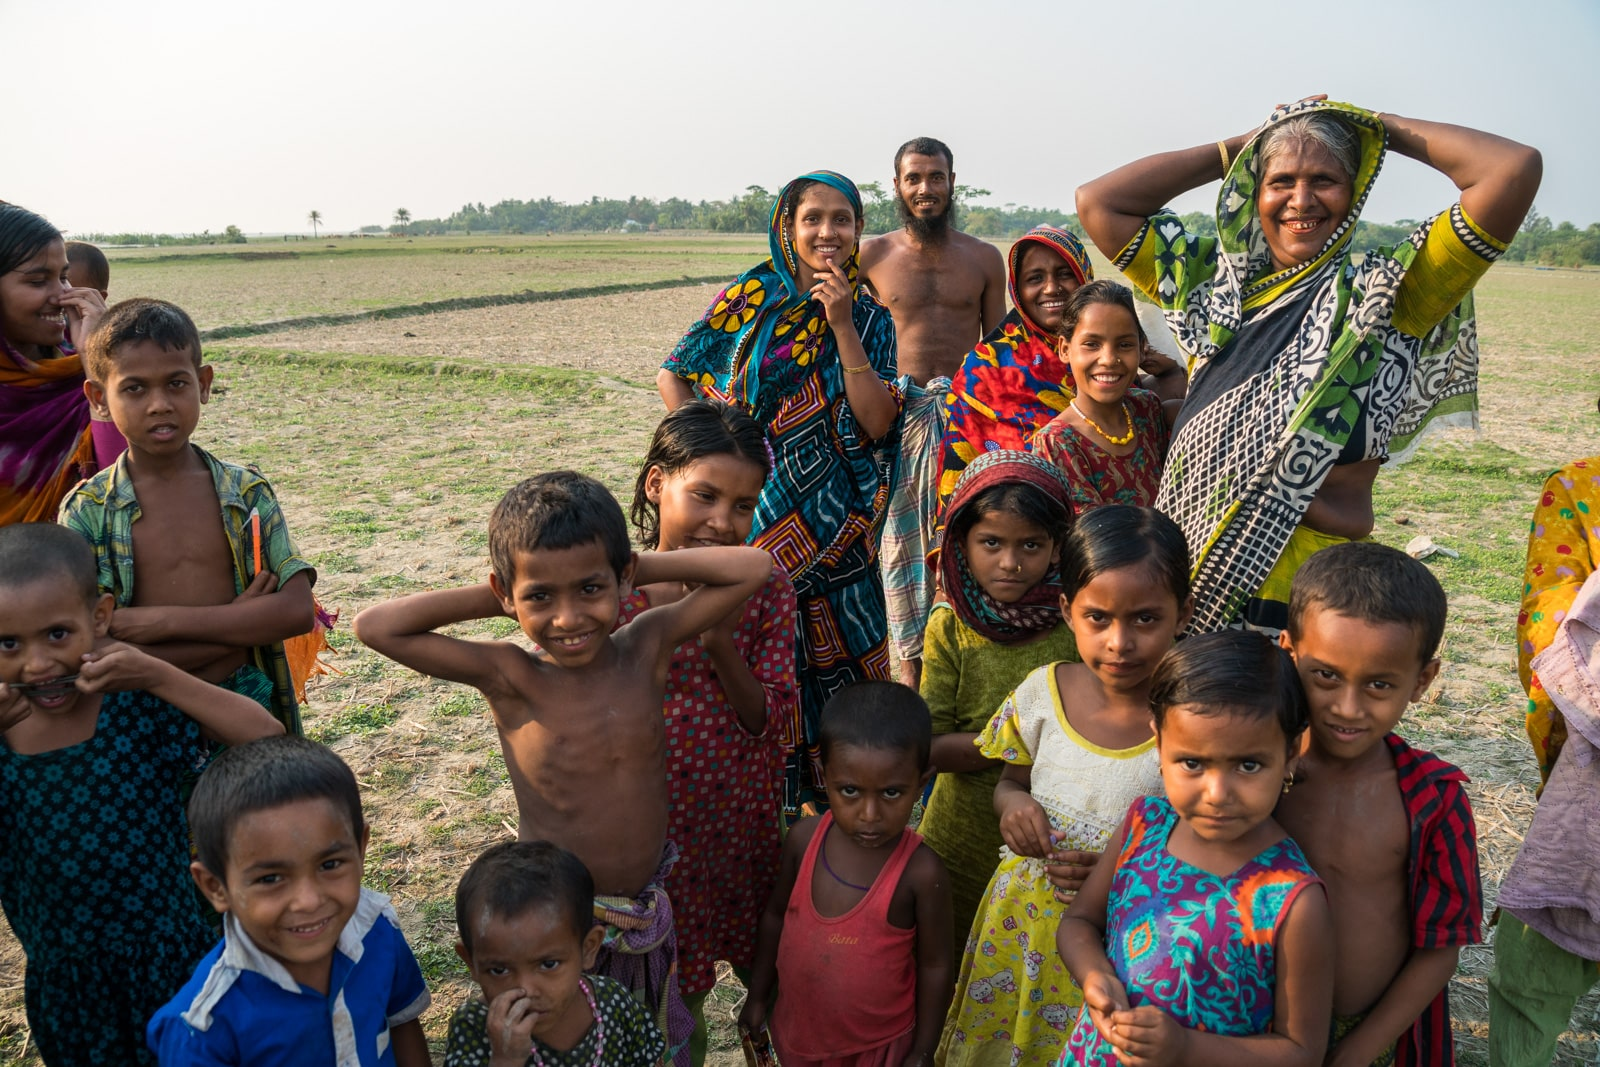 Travel guide to Nijhum Dwip, Bangladesh - Group of curious villagers - Lost With Purpose travel blog